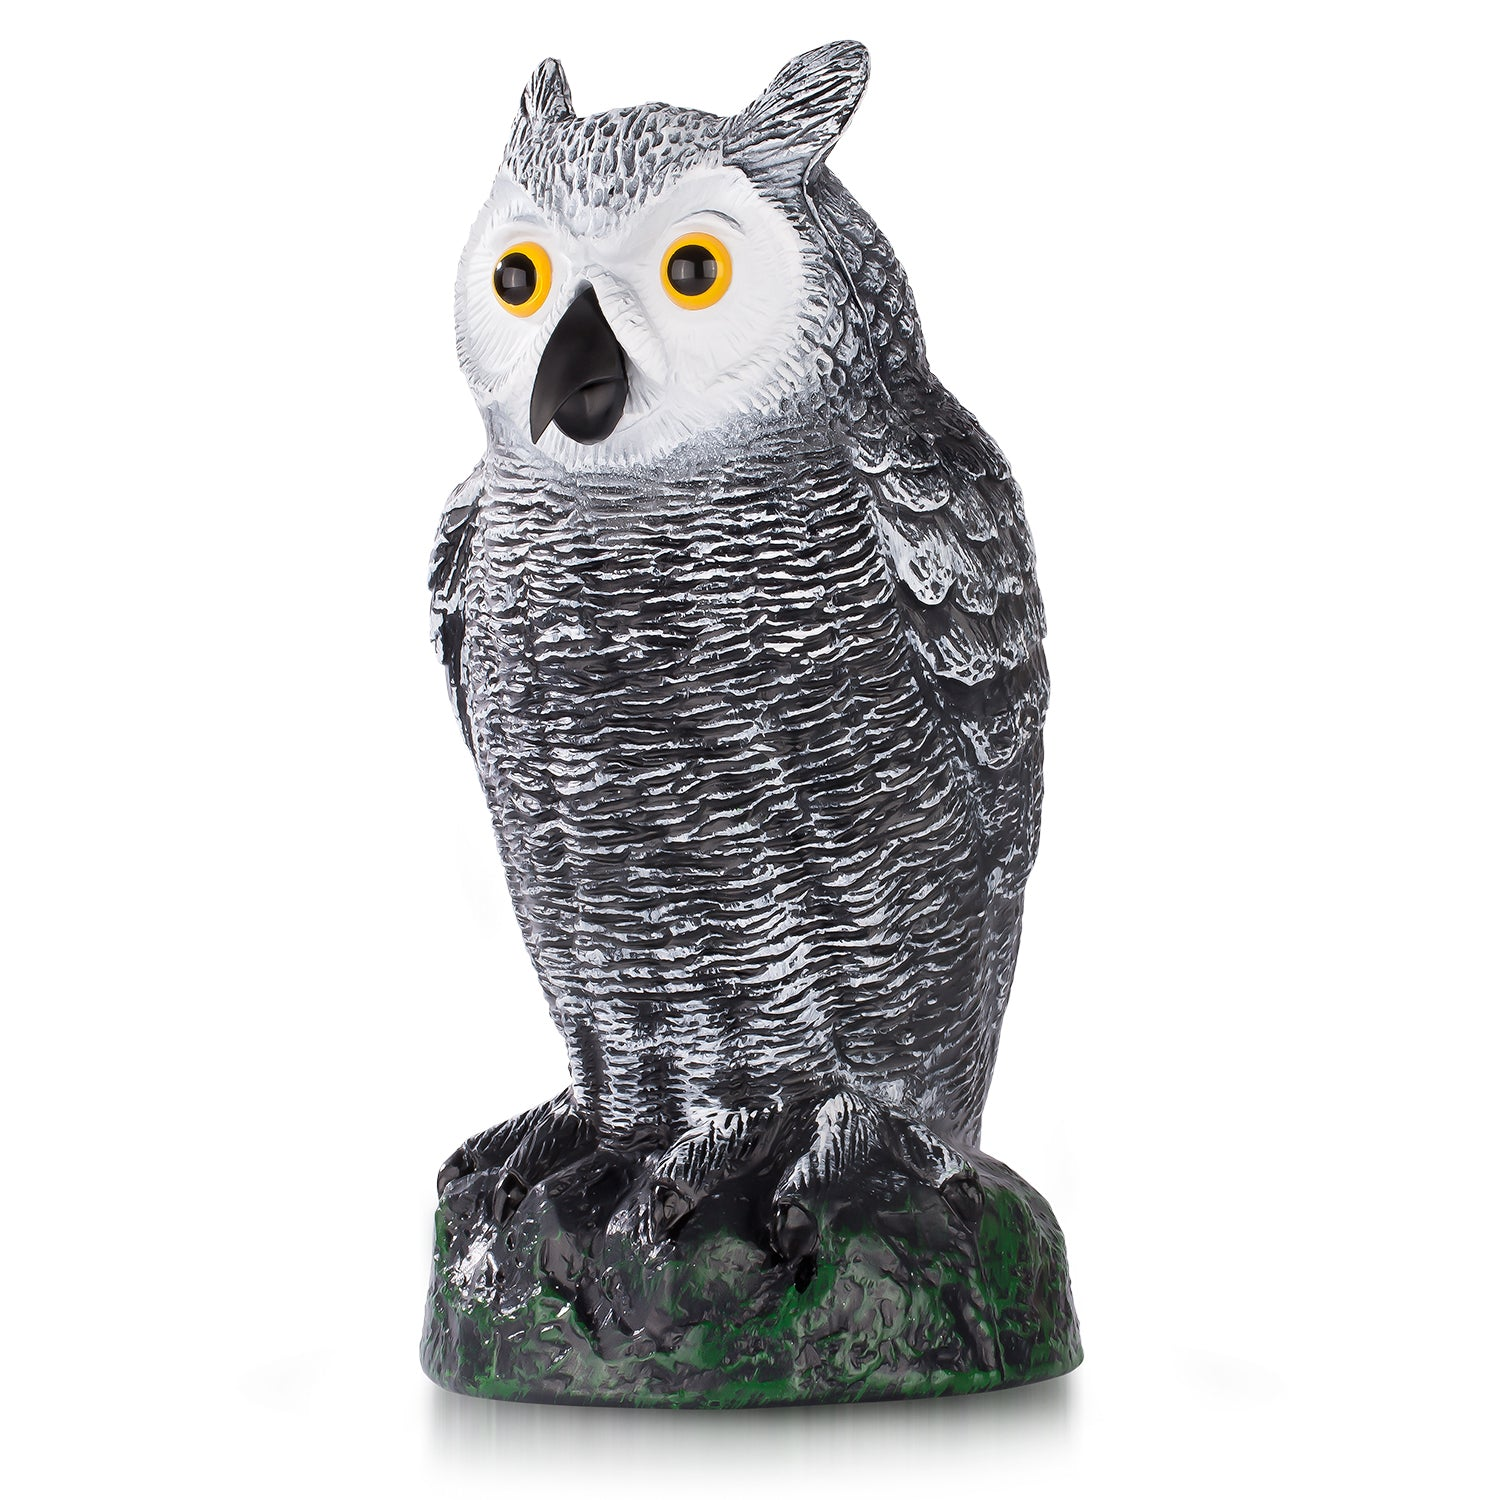 "Ultimate Scarecrow 10,5"" Owl Decoy Statue - Hand-Painted Garden Protector"